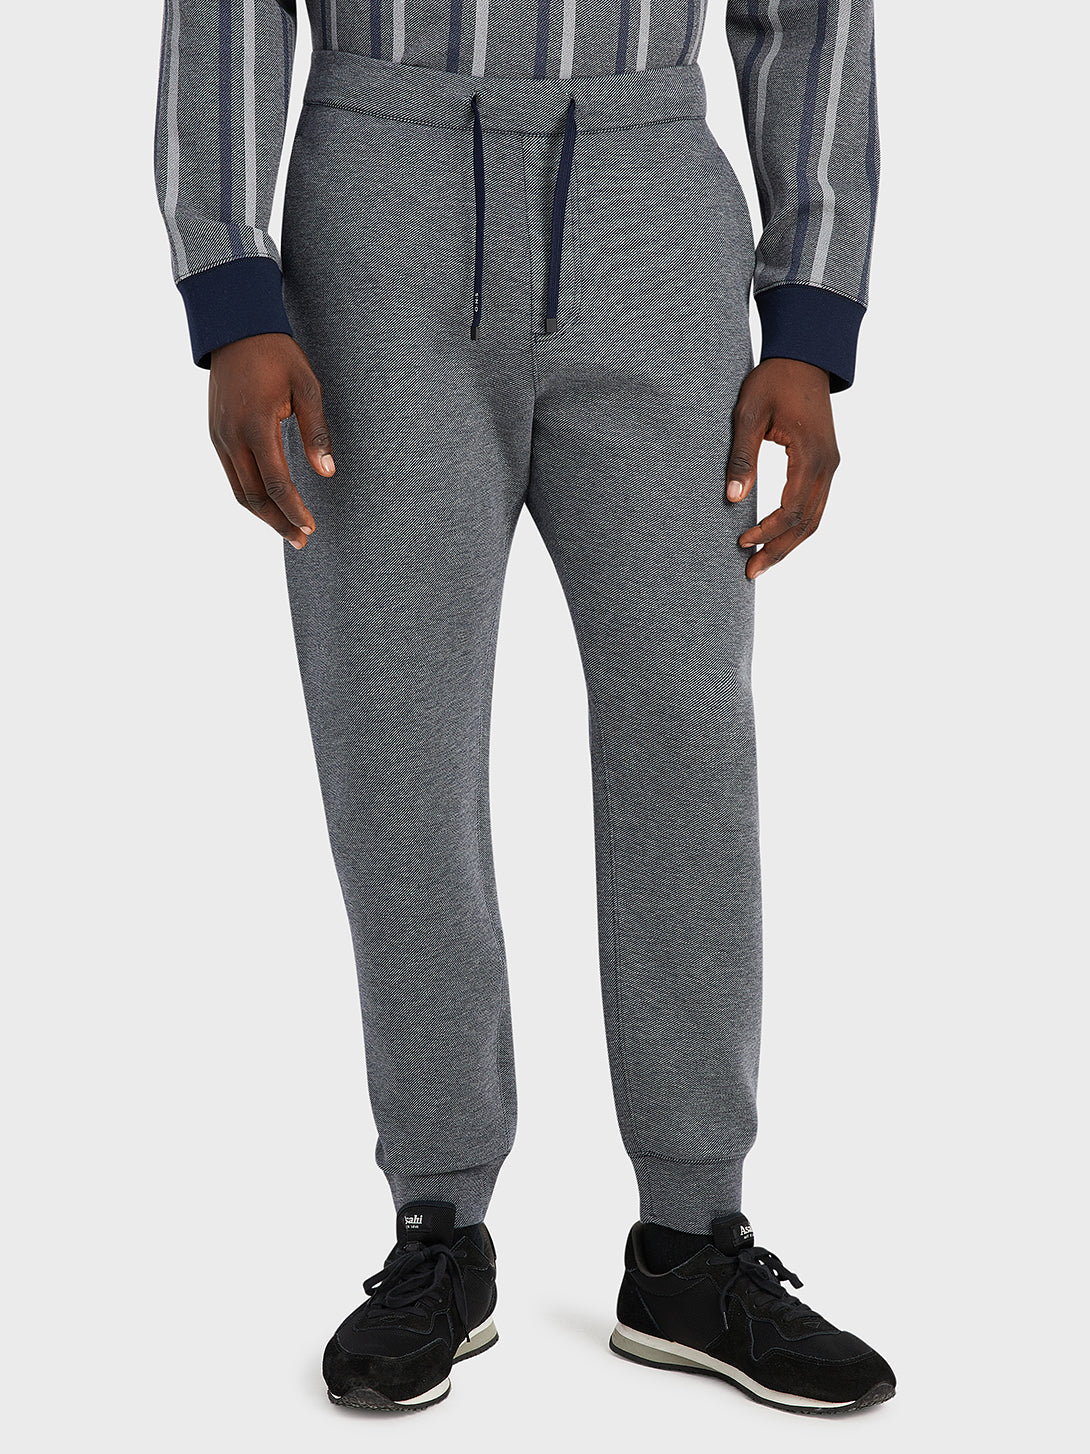 black friday deals ONS Clothing Men's sweatpants in NAVY